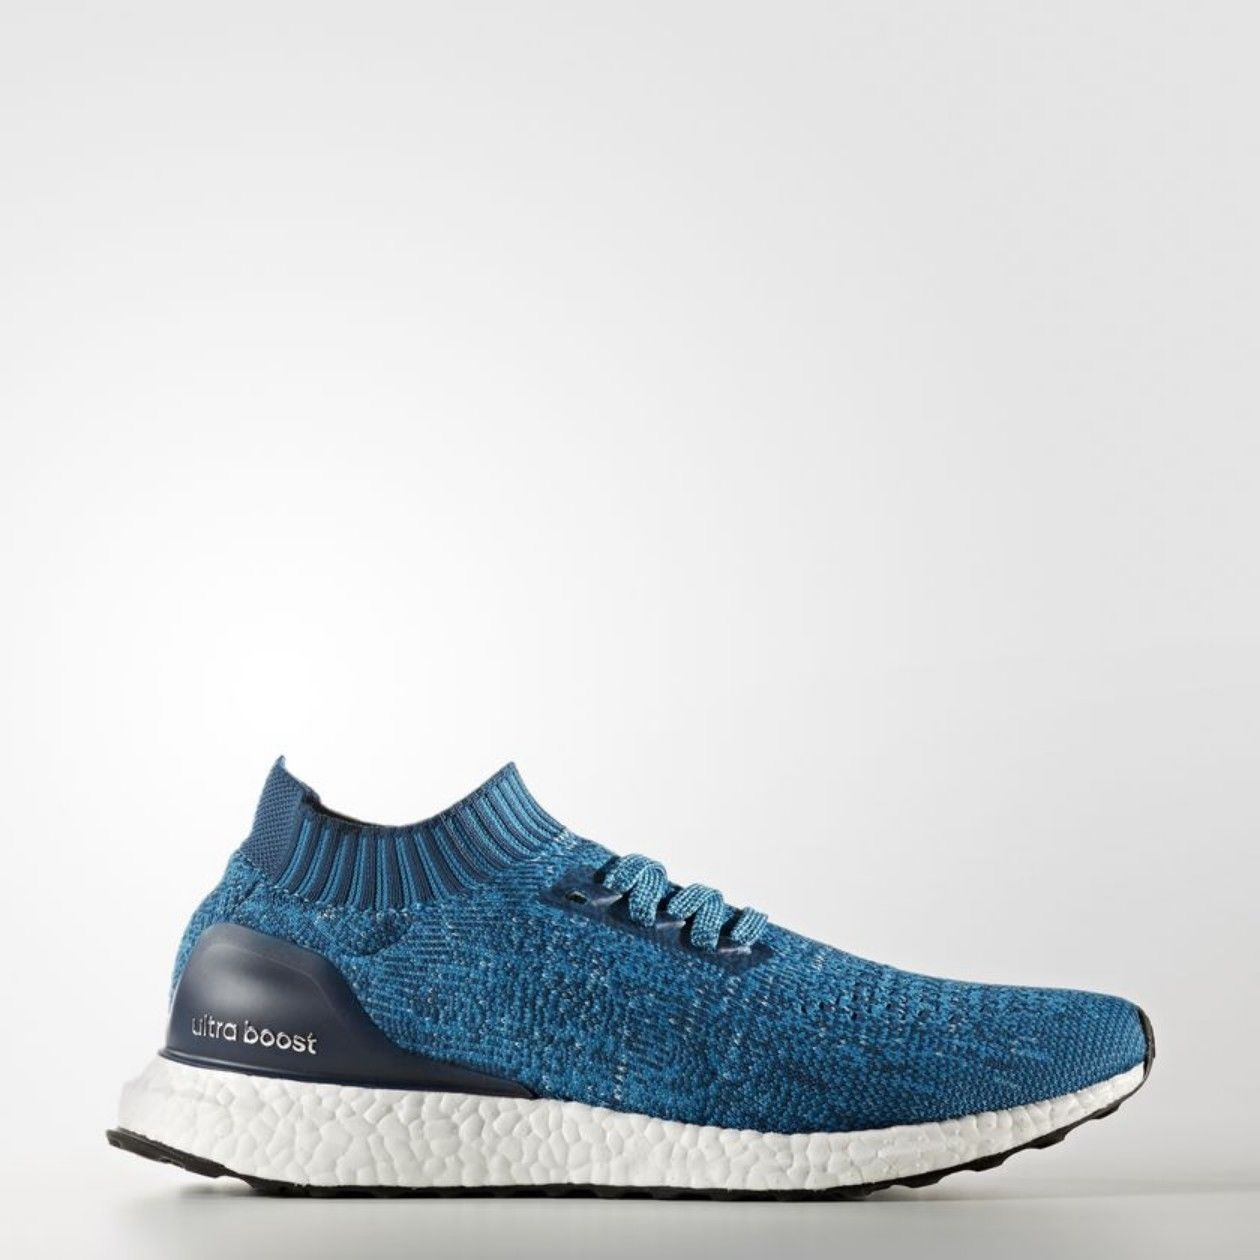 the best attitude 422b6 90e9f  BY2555  MENS ADIDAS ORIGINALS ULTRA BOOST UNCAGED 3.0 PETROL BLUE NEW!  Item specifics Condition  New with box  A brand-new unused and unworn item  ...